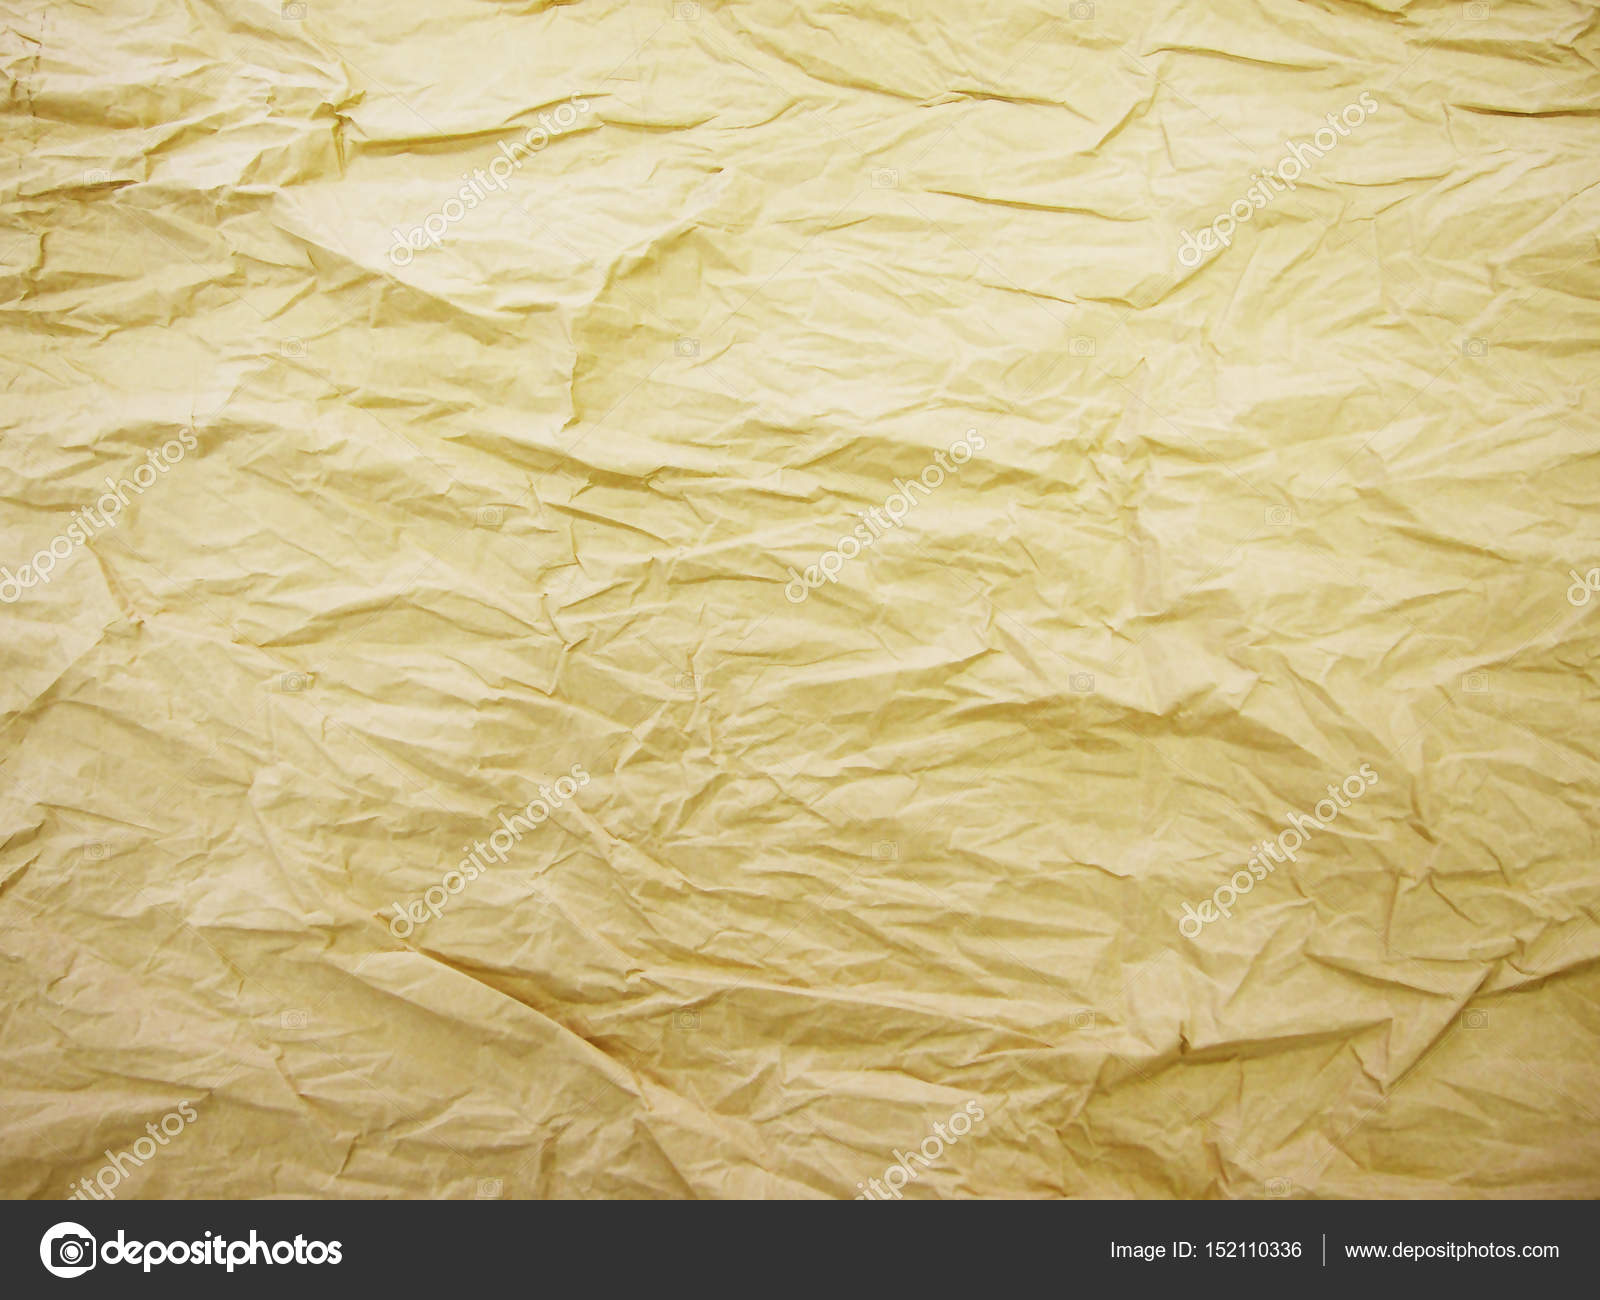 How to give photos the effect of crumpled paper